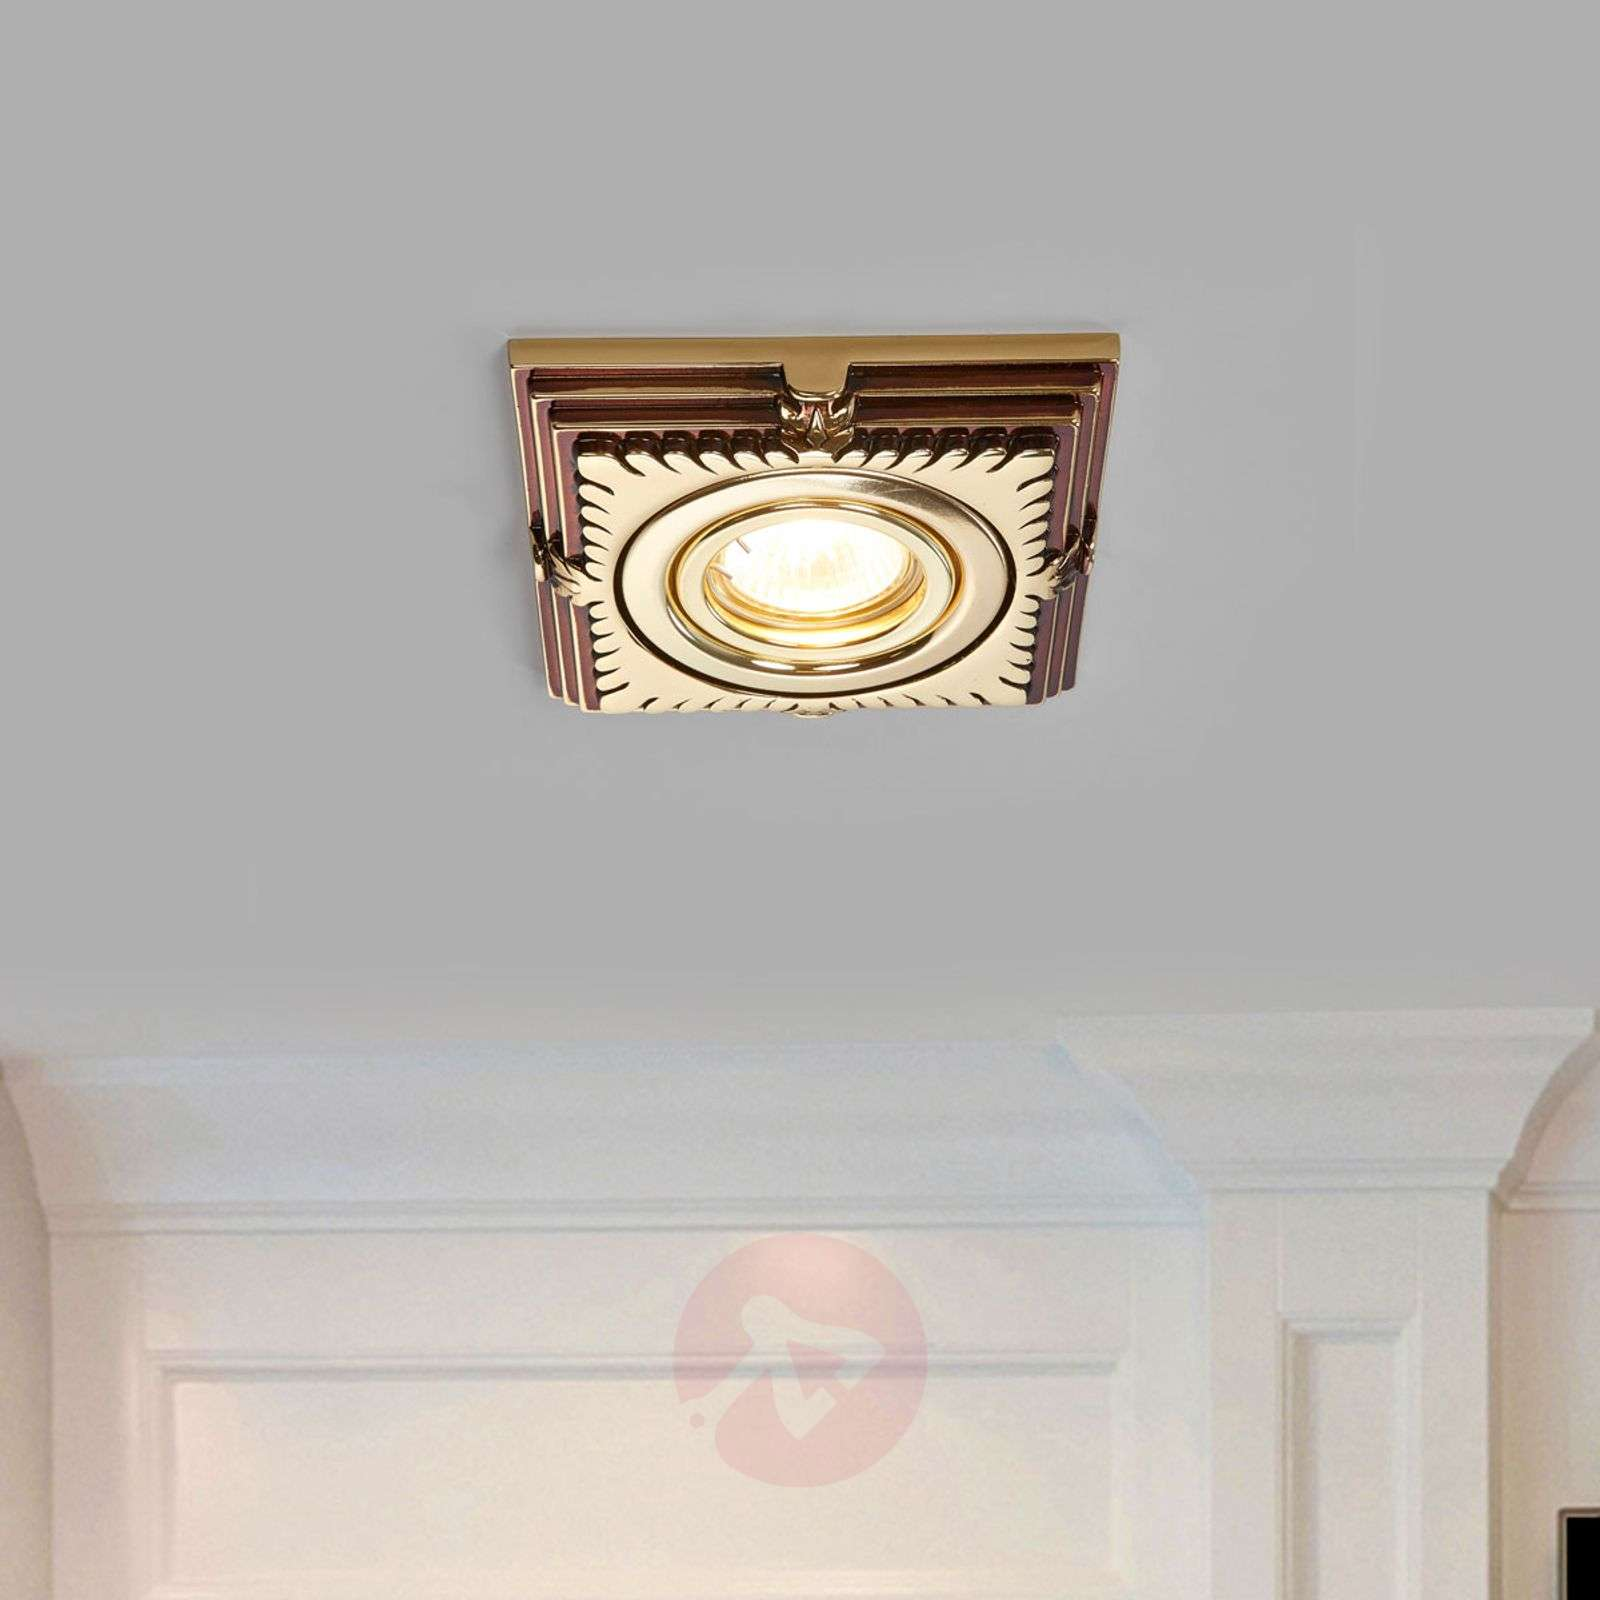 Square recessed light yago lights square recessed light yago 8023125 01 aloadofball Images